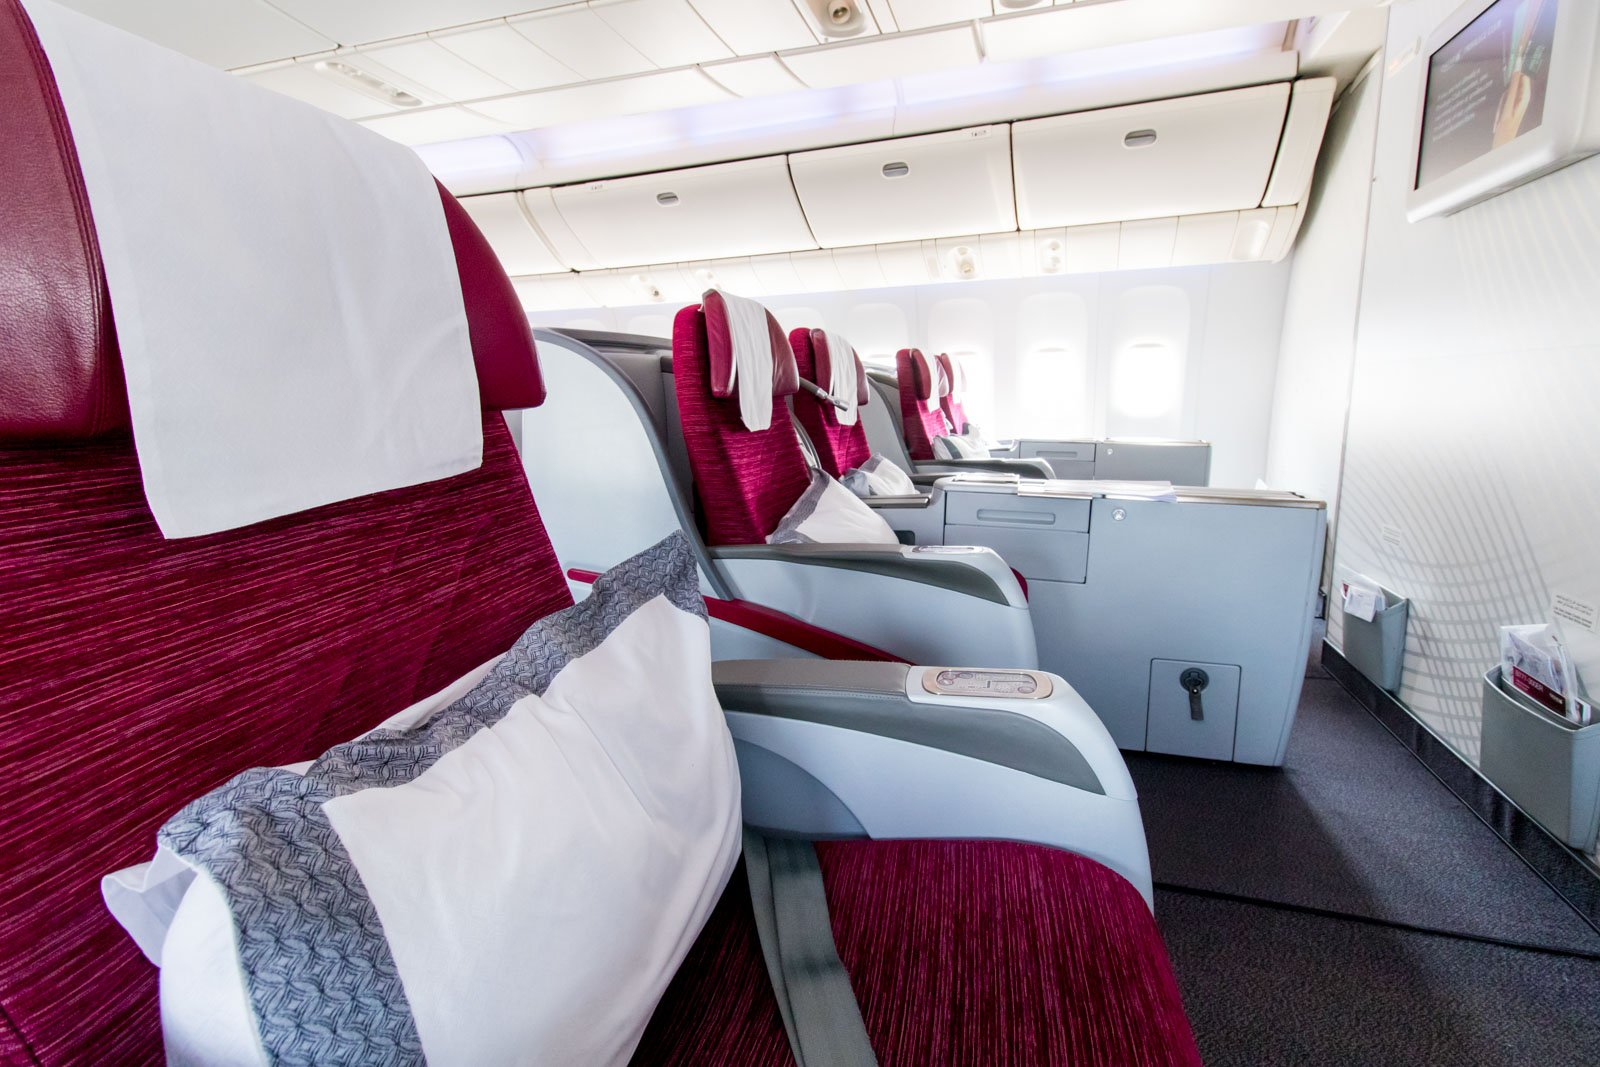 Qatar Airways 777-300ER Business Class Seat